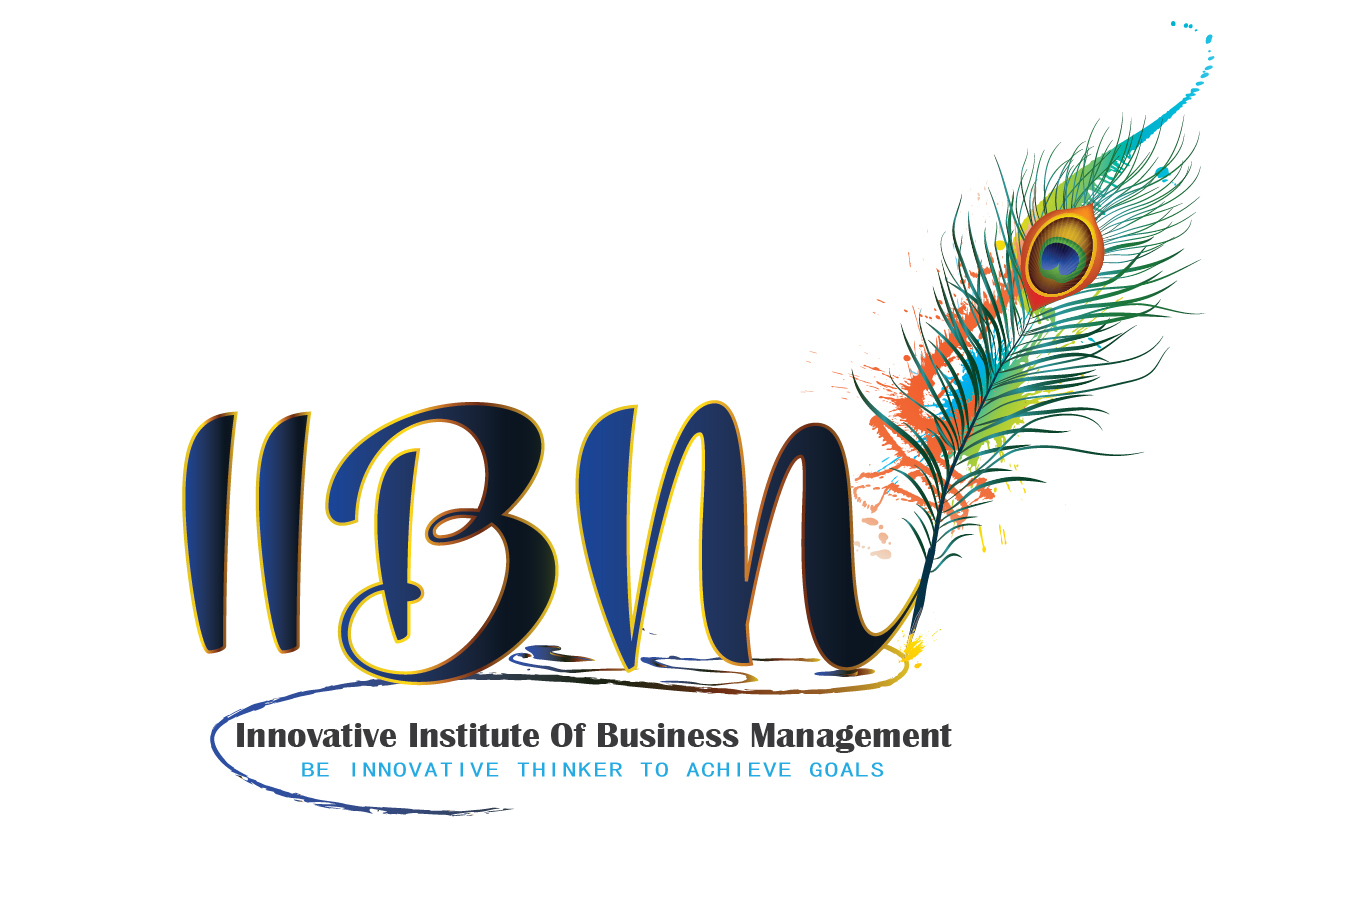 Innovative Institute of Business Management Job Openings